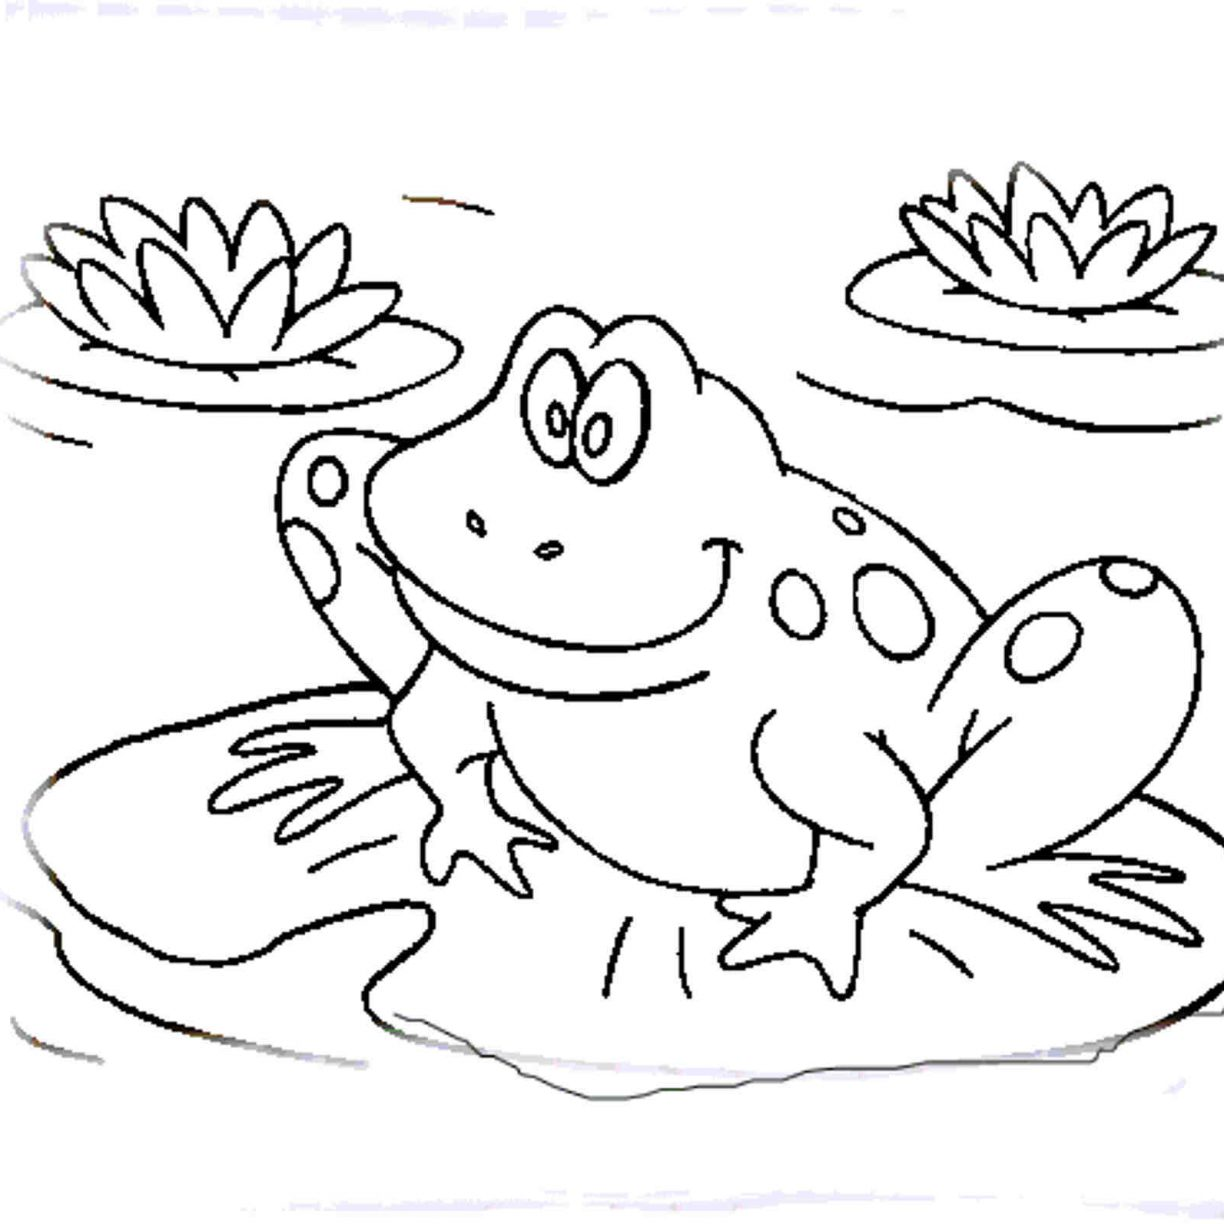 Cartoon Frogs Drawing At Getdrawings